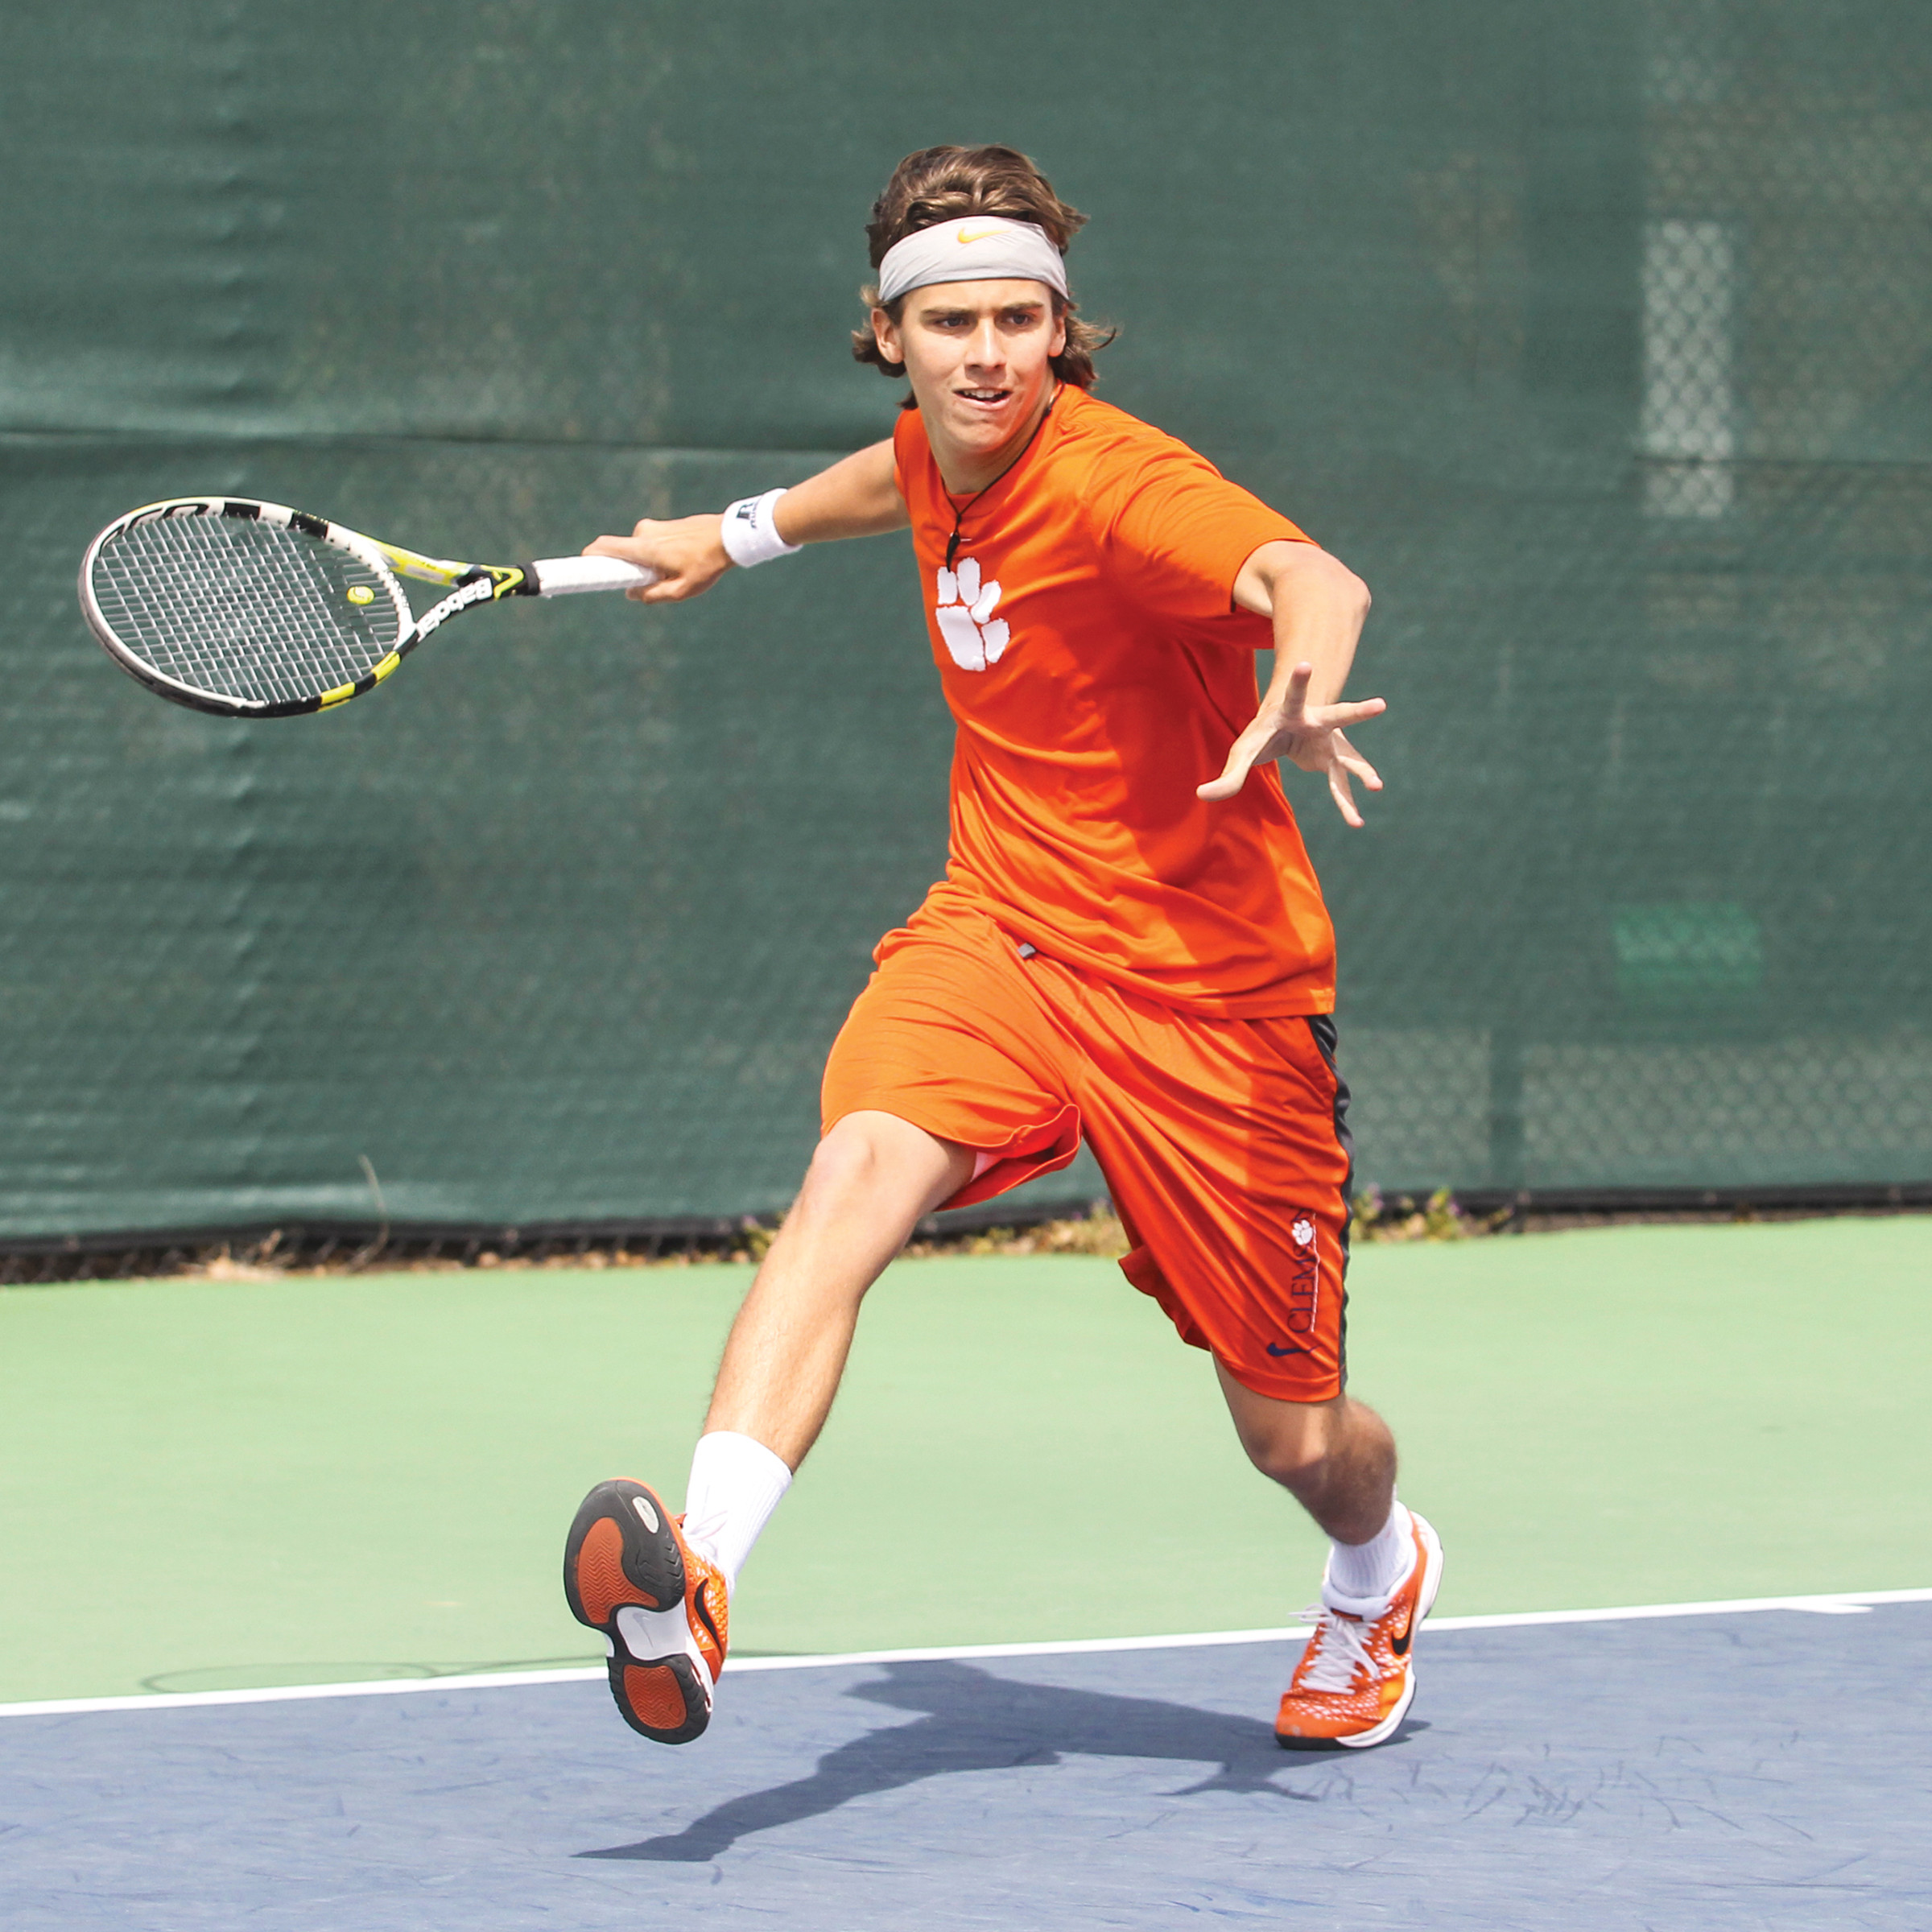 Clemson Moves Up to 22nd in Latest ITA Rankings